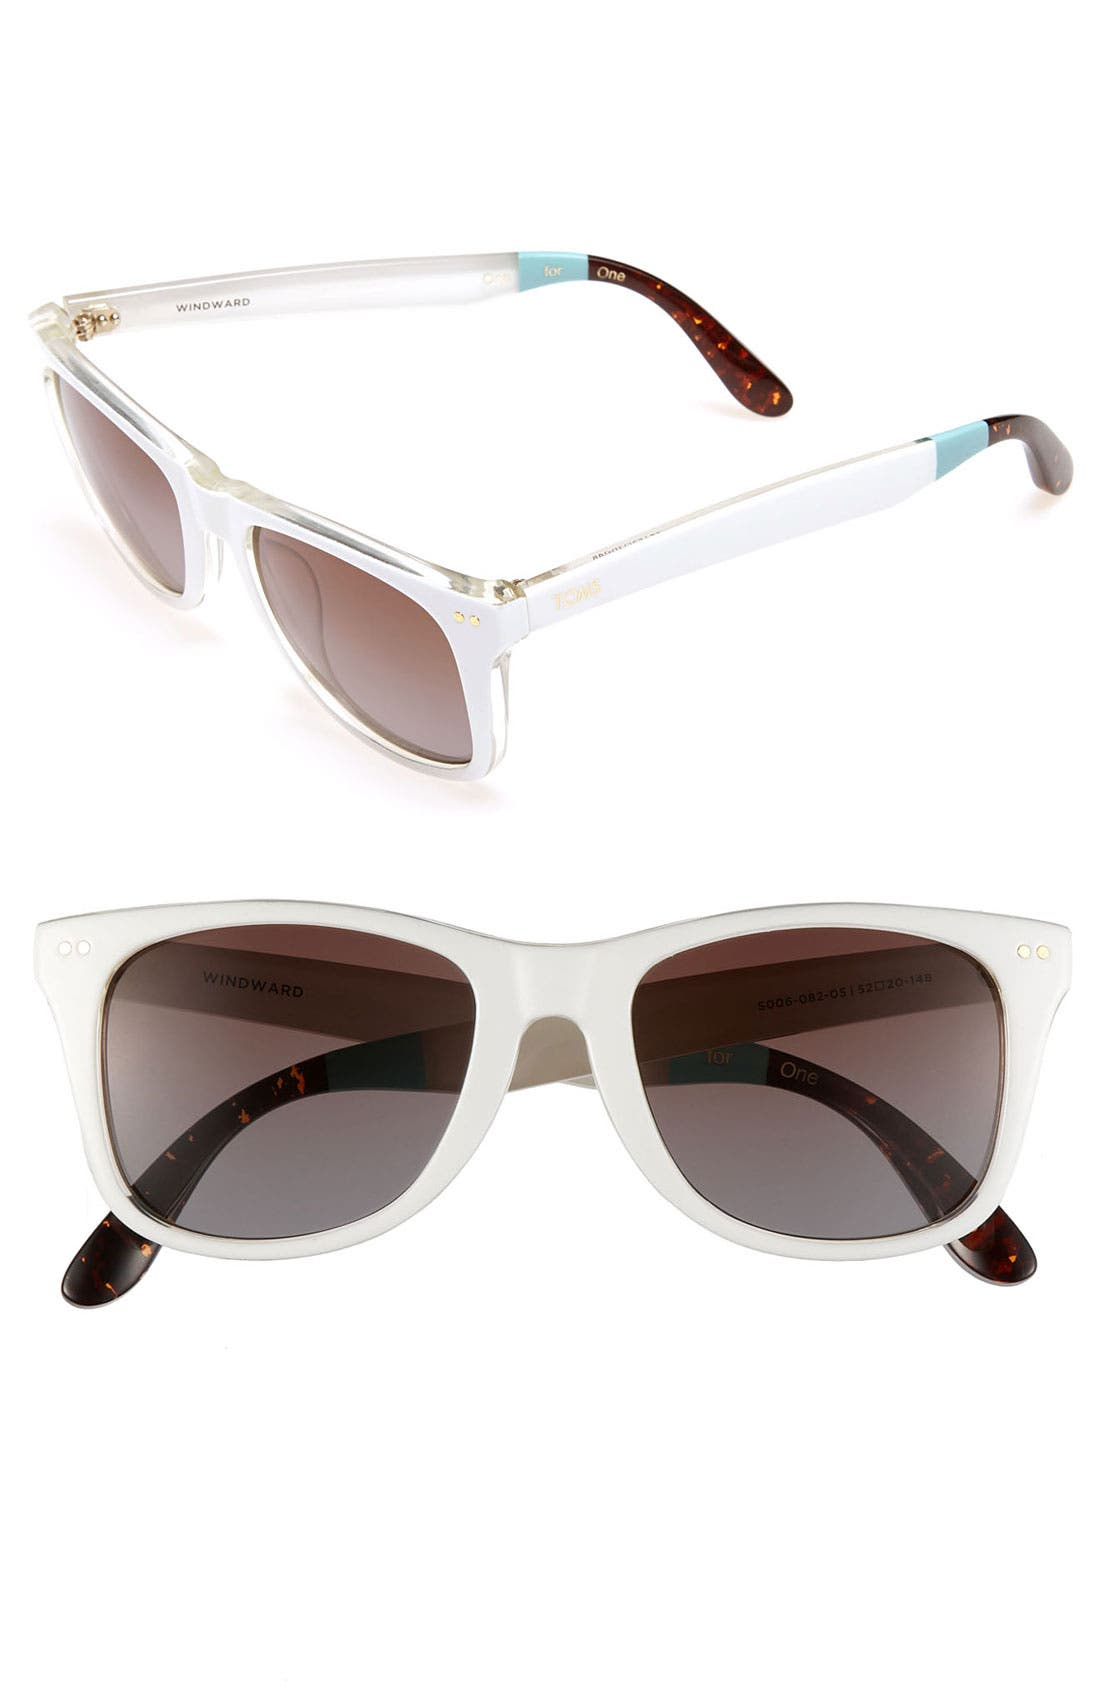 Alternate Image 1 Selected - TOMS 'Windward' 52mm Sunglasses